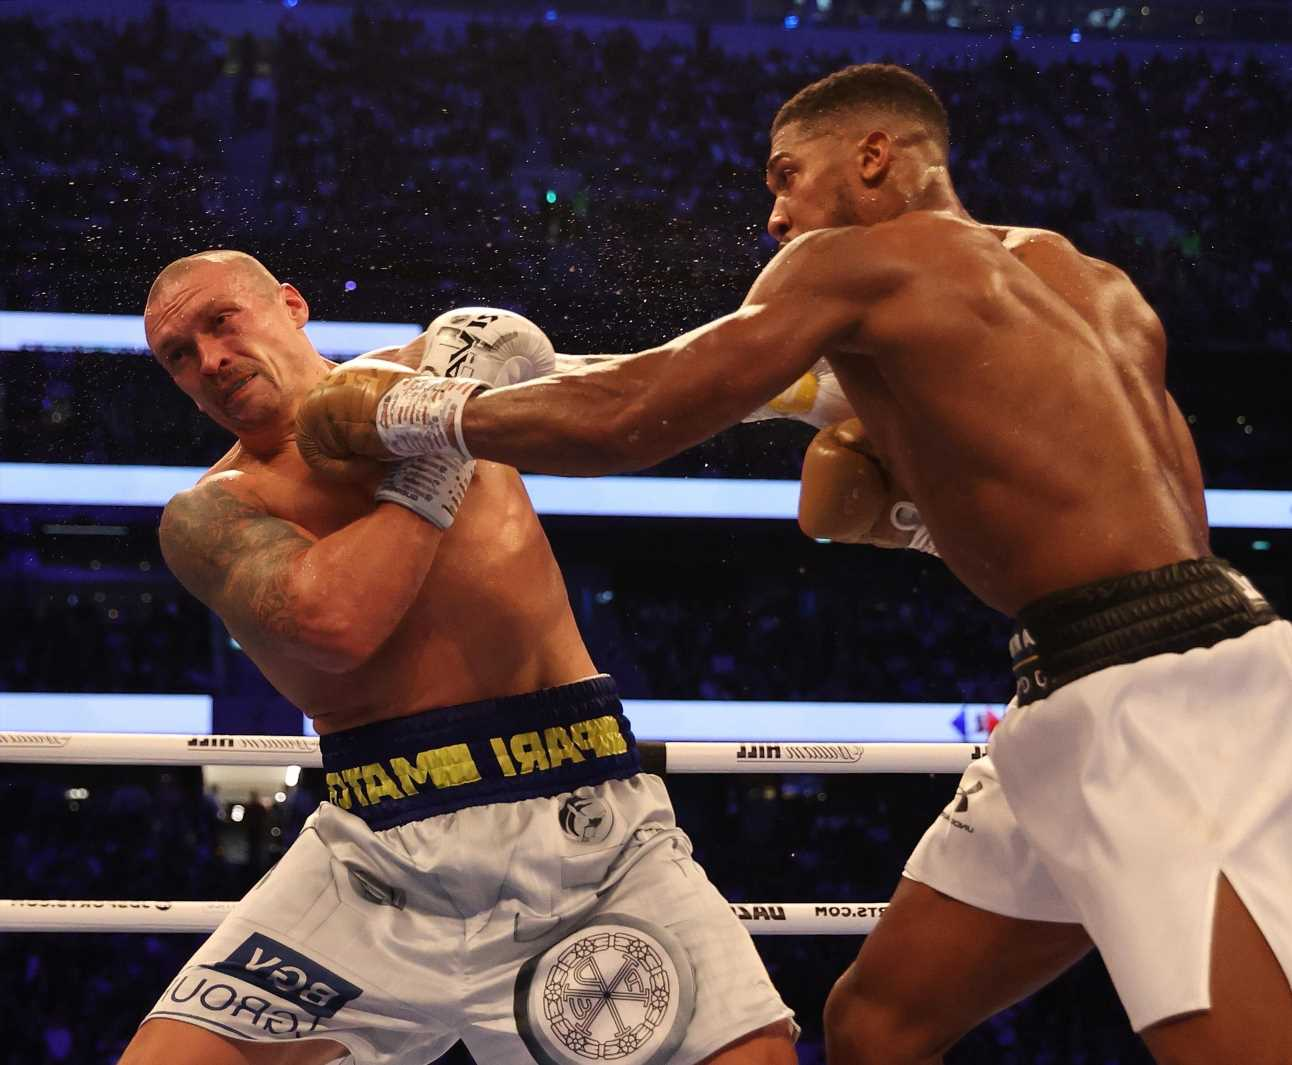 Oleksandr Usyk reveals how hard Anthony Joshua REALLY hits with power punches after being 'sent to Elon Musk for awhile'